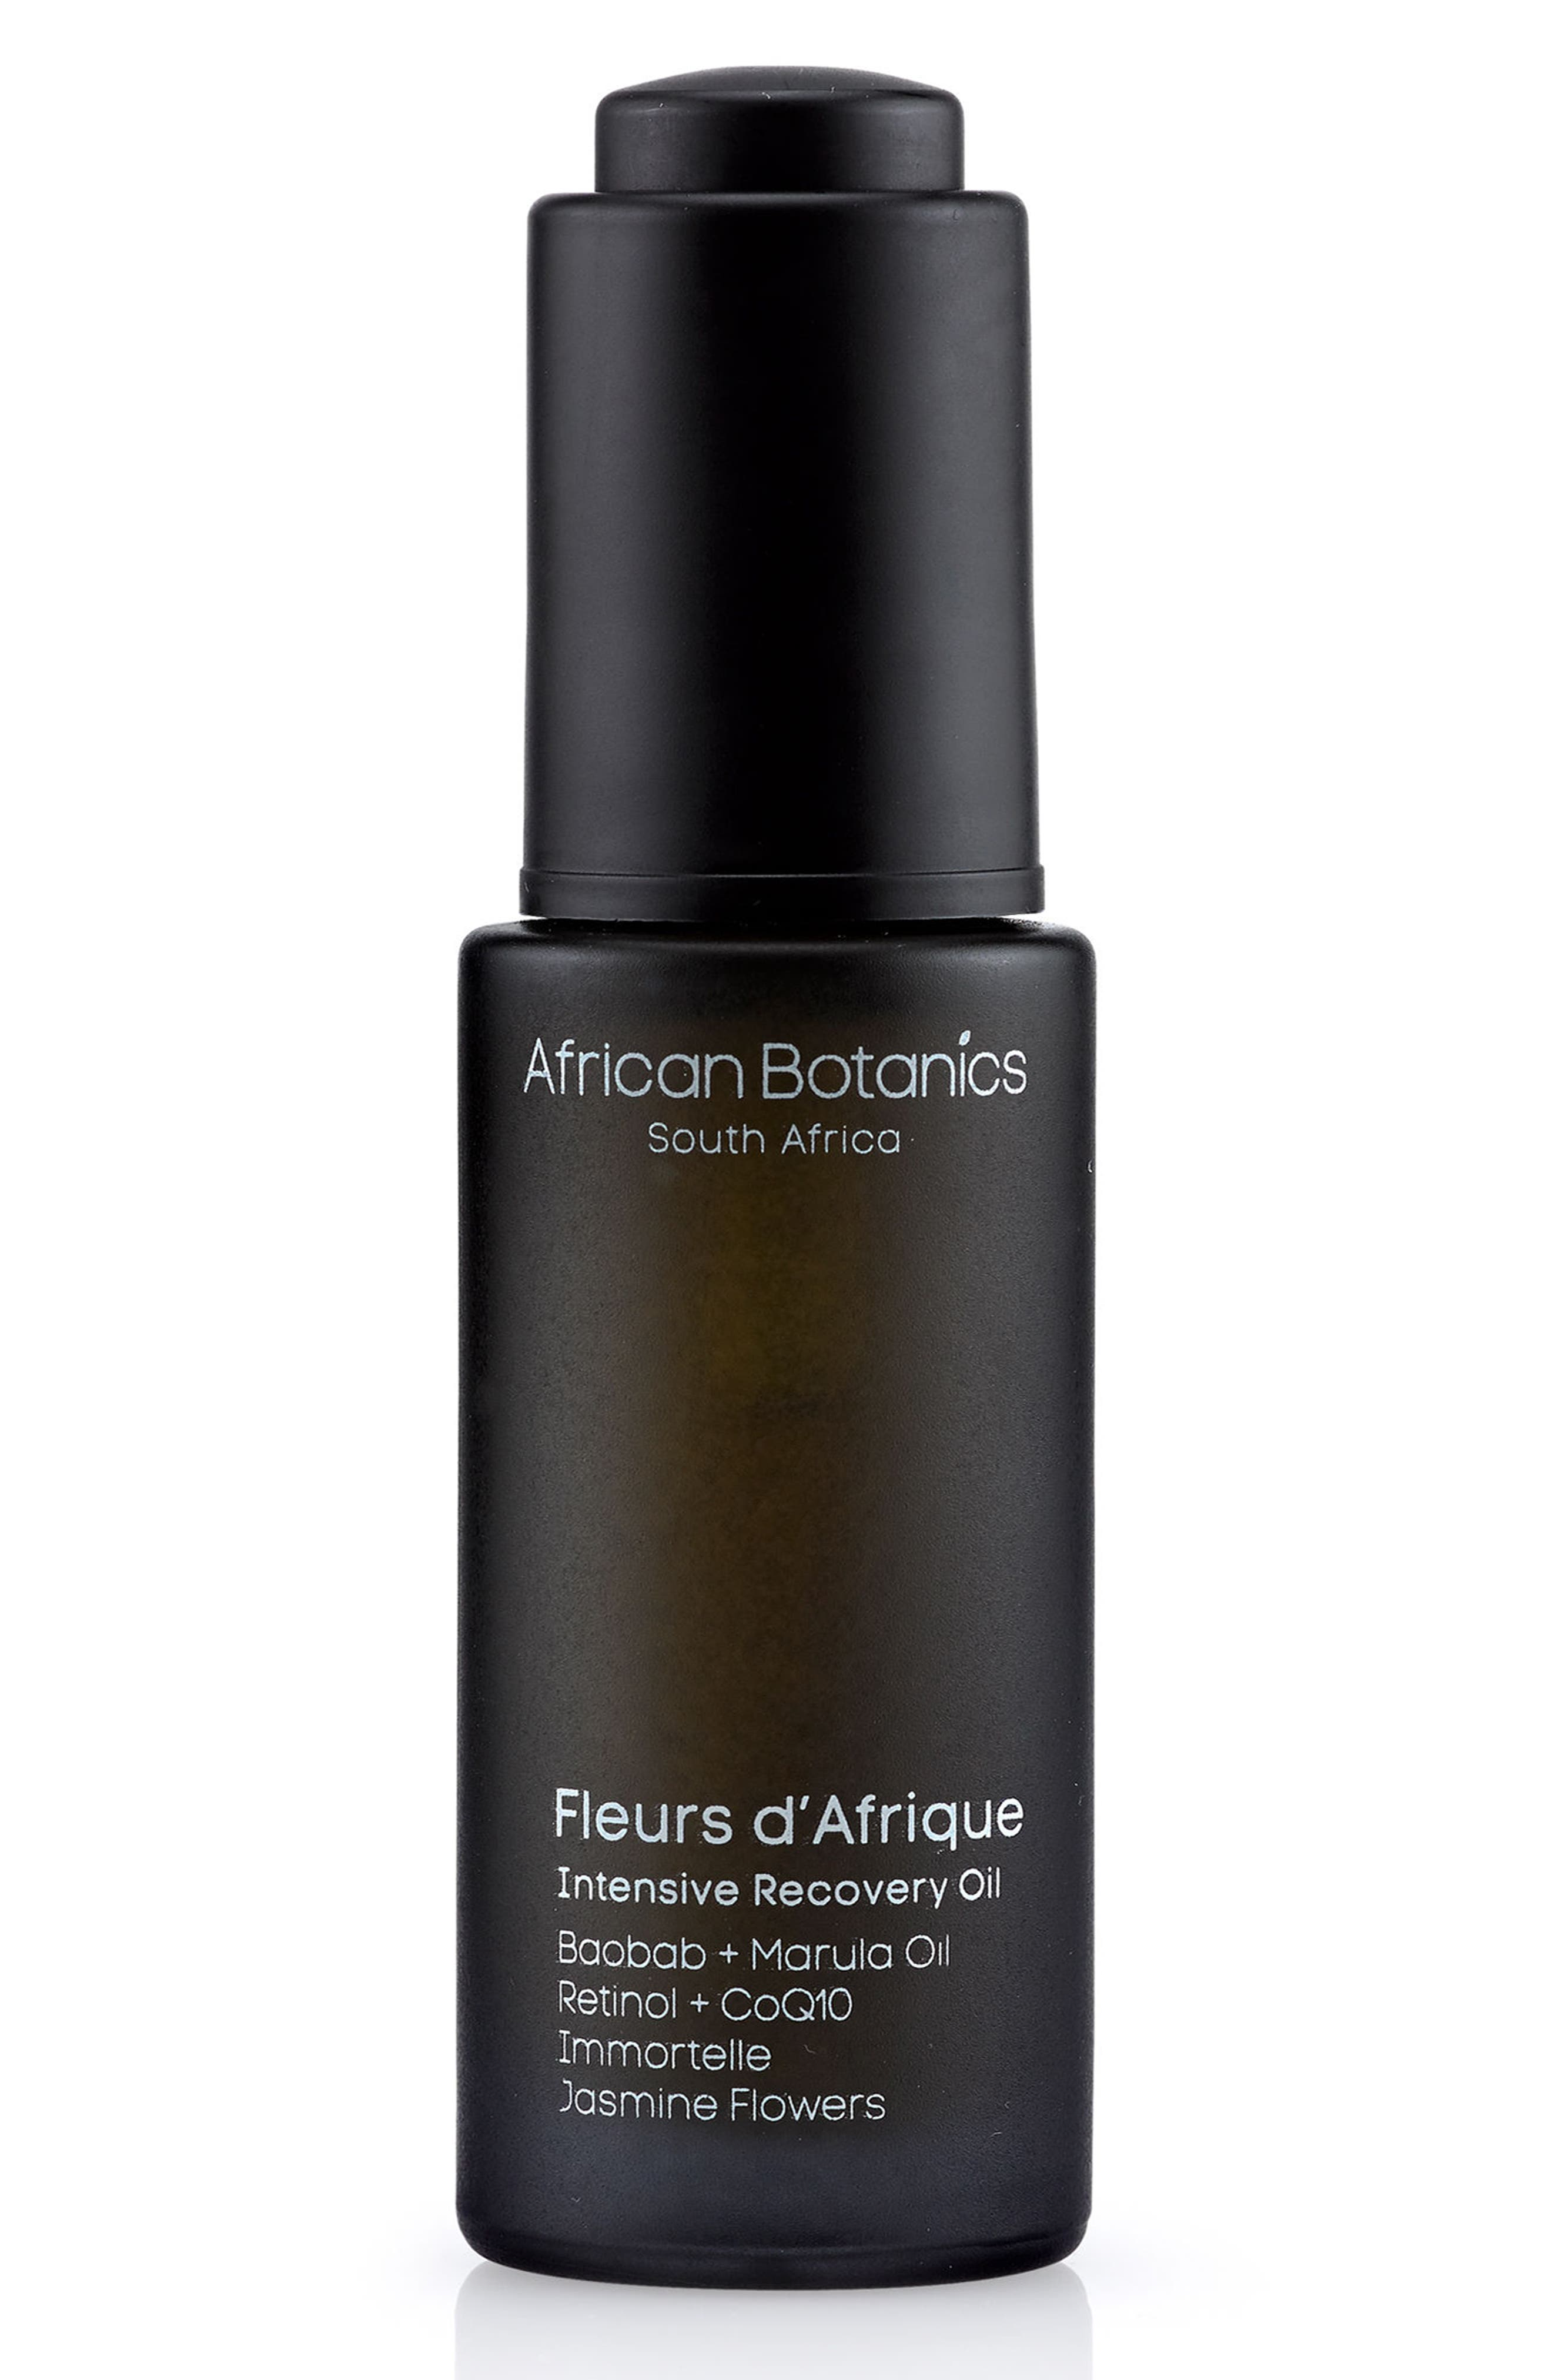 Alternate Image 1 Selected - African Botanics Fleurs d'Afrique Intensive Recovery Oil